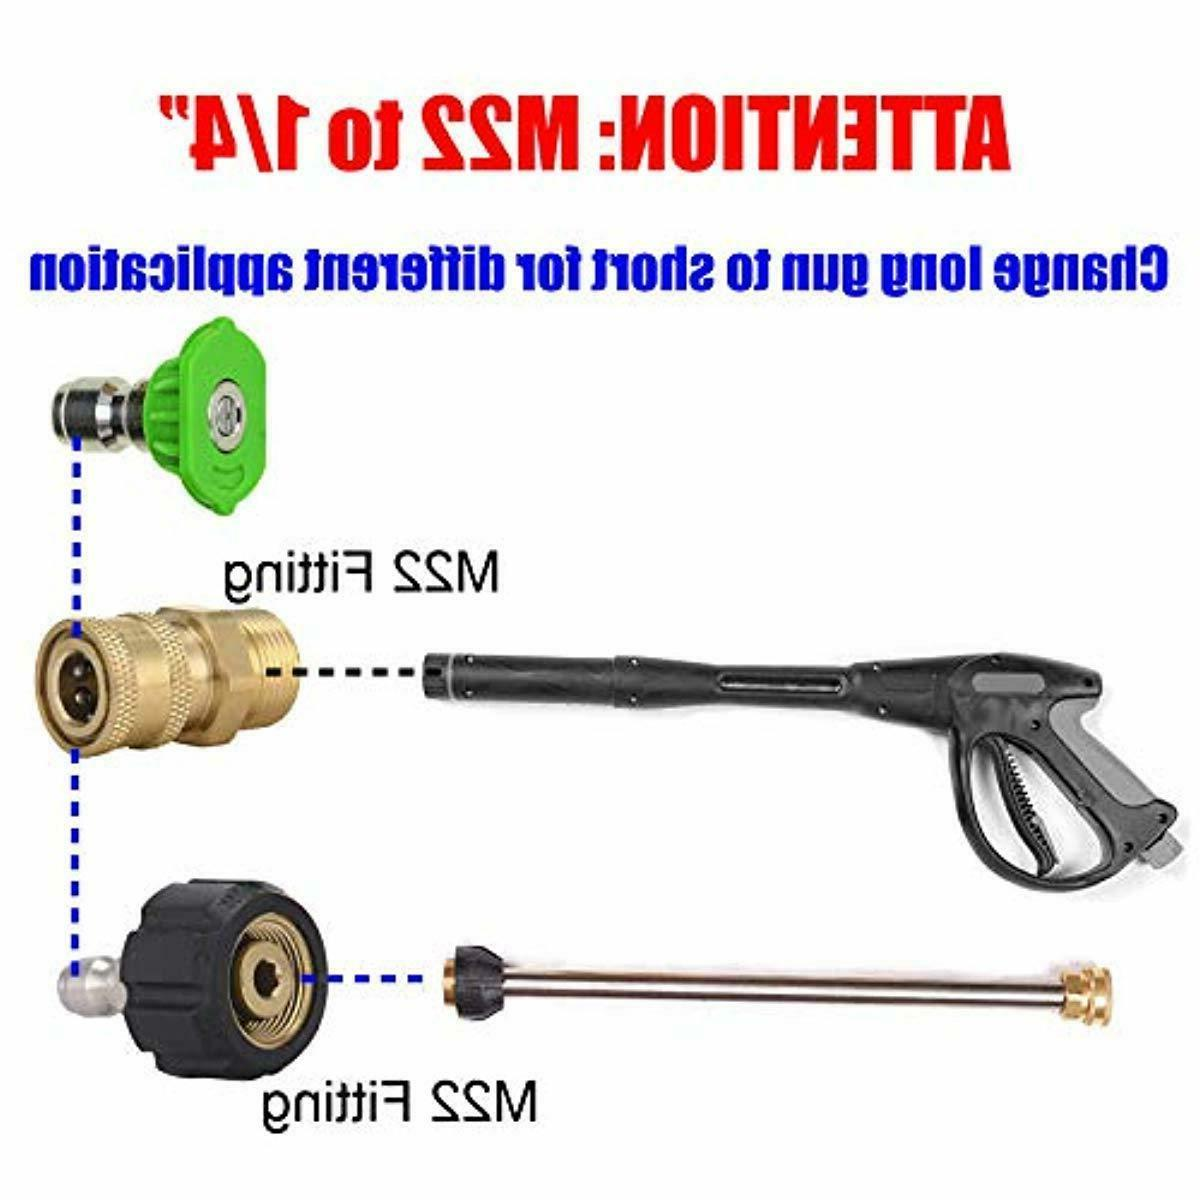 Sooprinse Pressure Washer Set 5000 PSI M22 Swivel